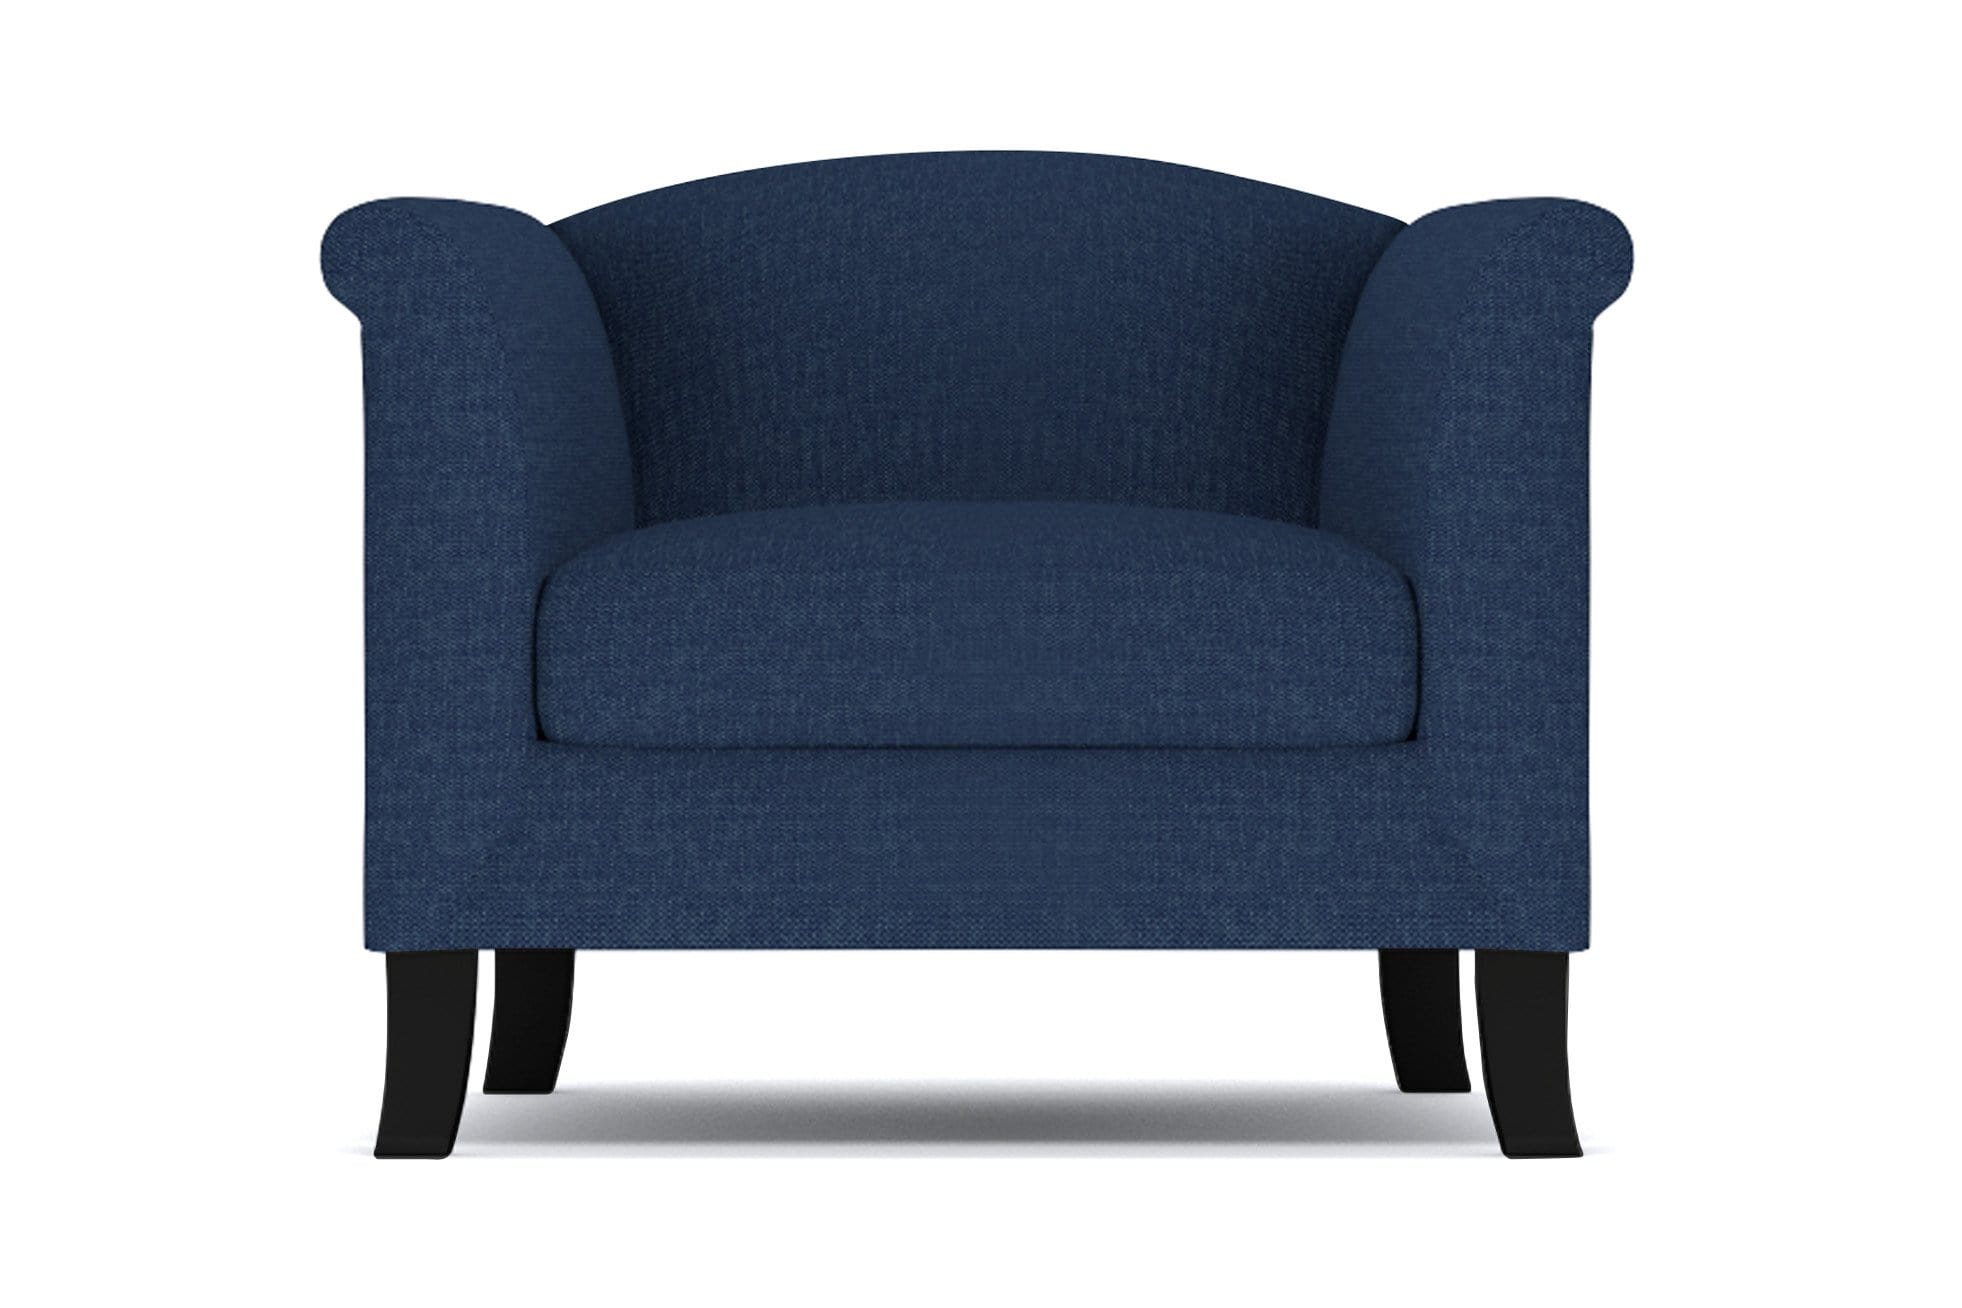 Albright_Chair__Dark_Blue___Accent_Chair__Furniture_sold_by_Apt2B